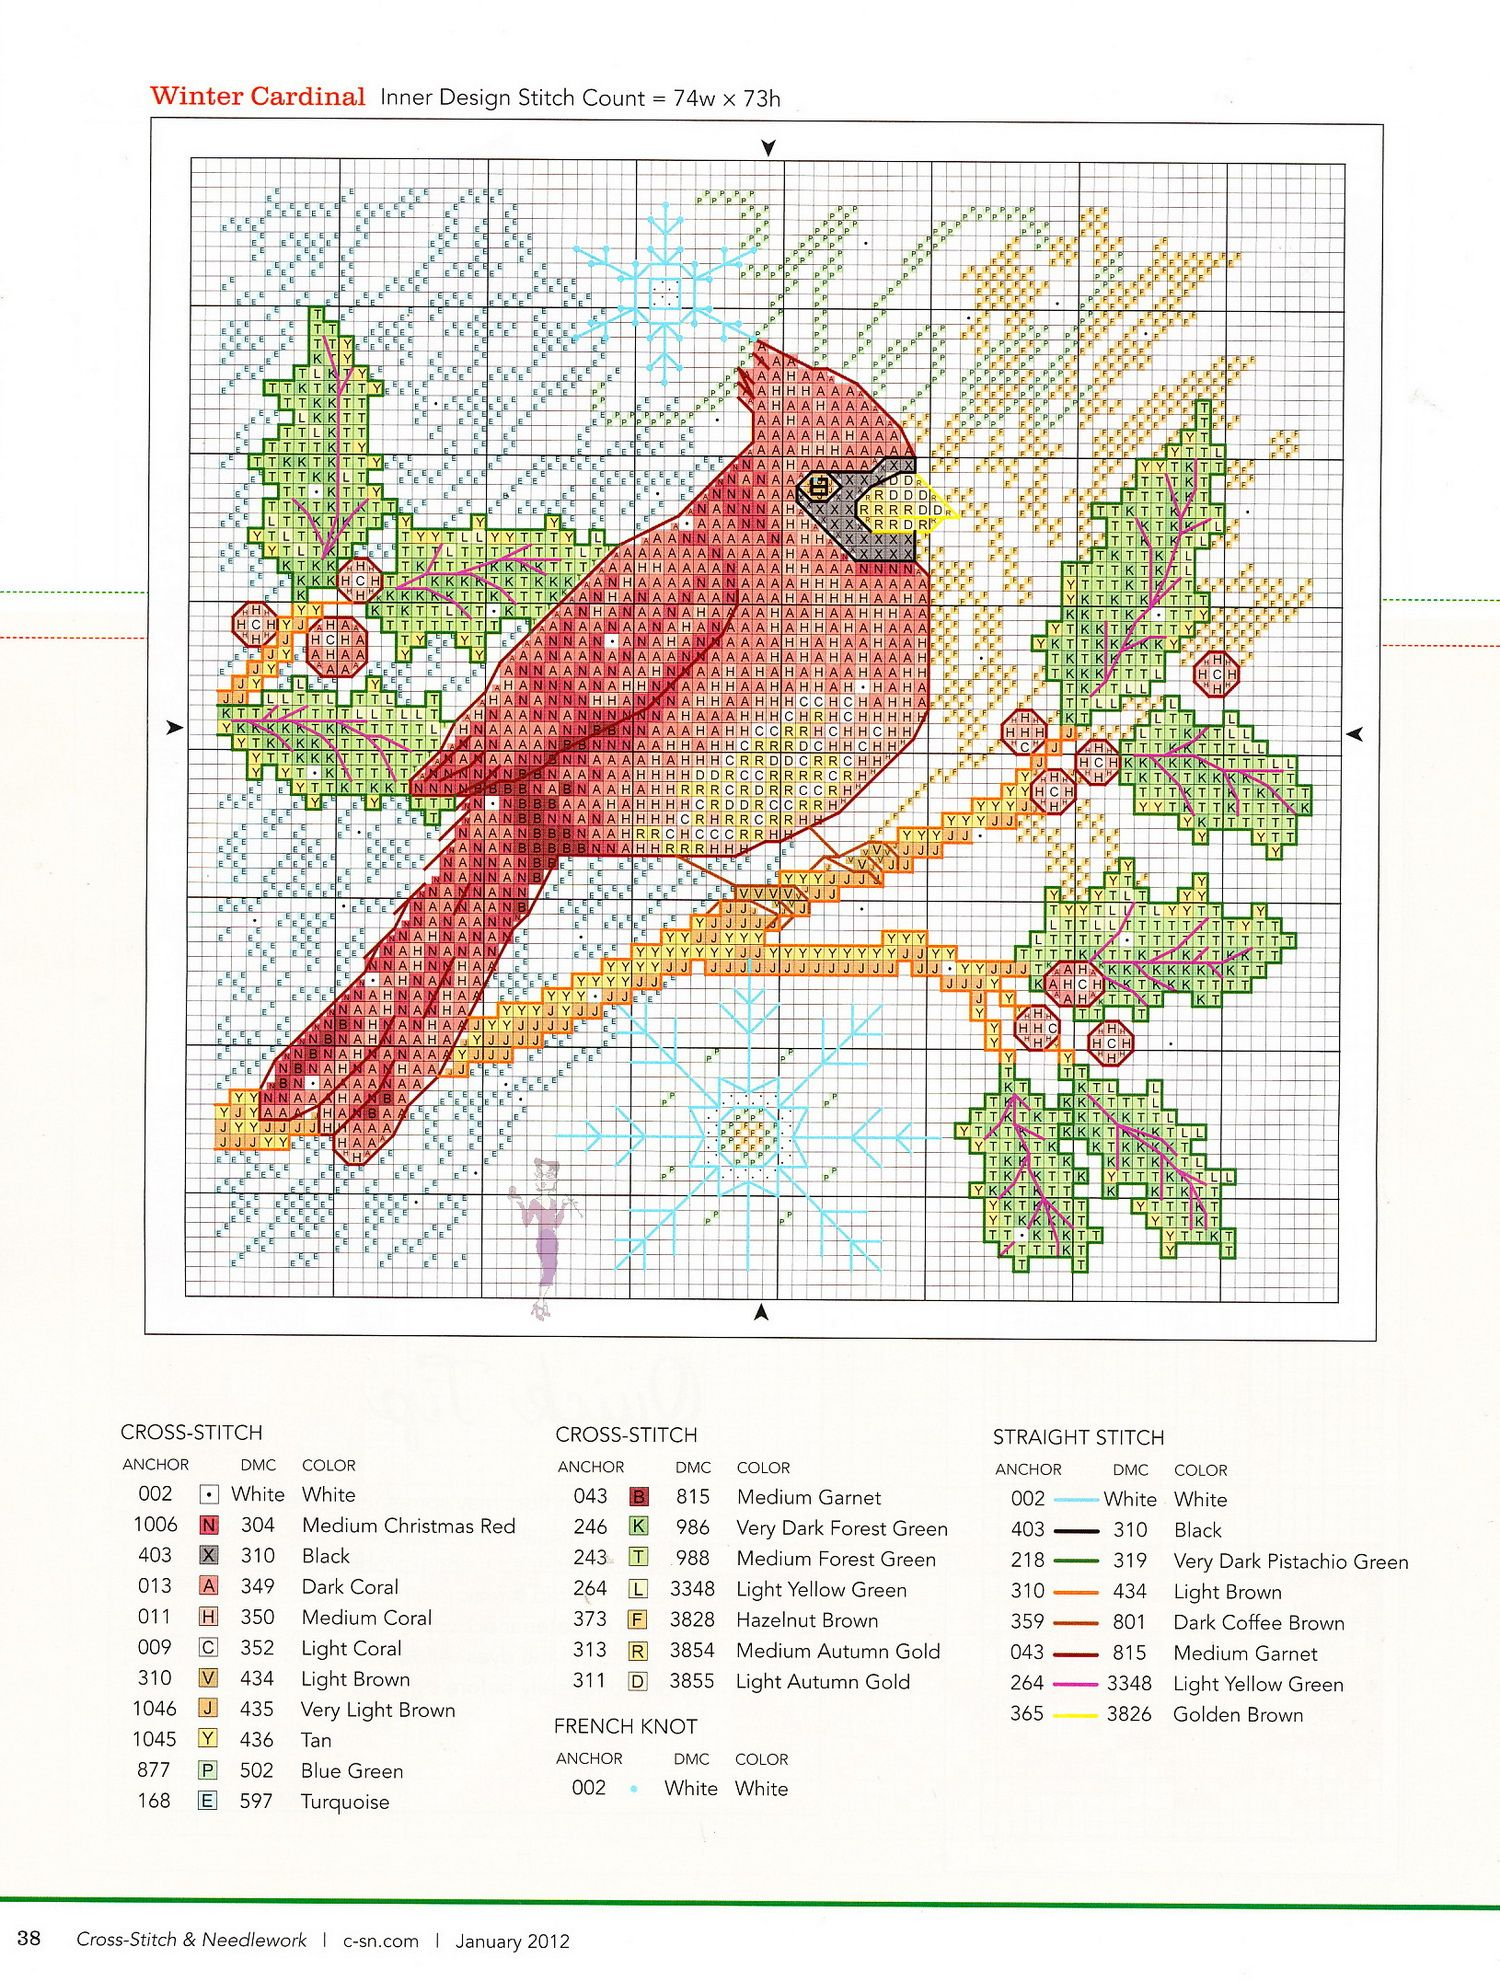 Northern Cardinal Chart Counted Cross Stitch Patterns Needlework embroidery